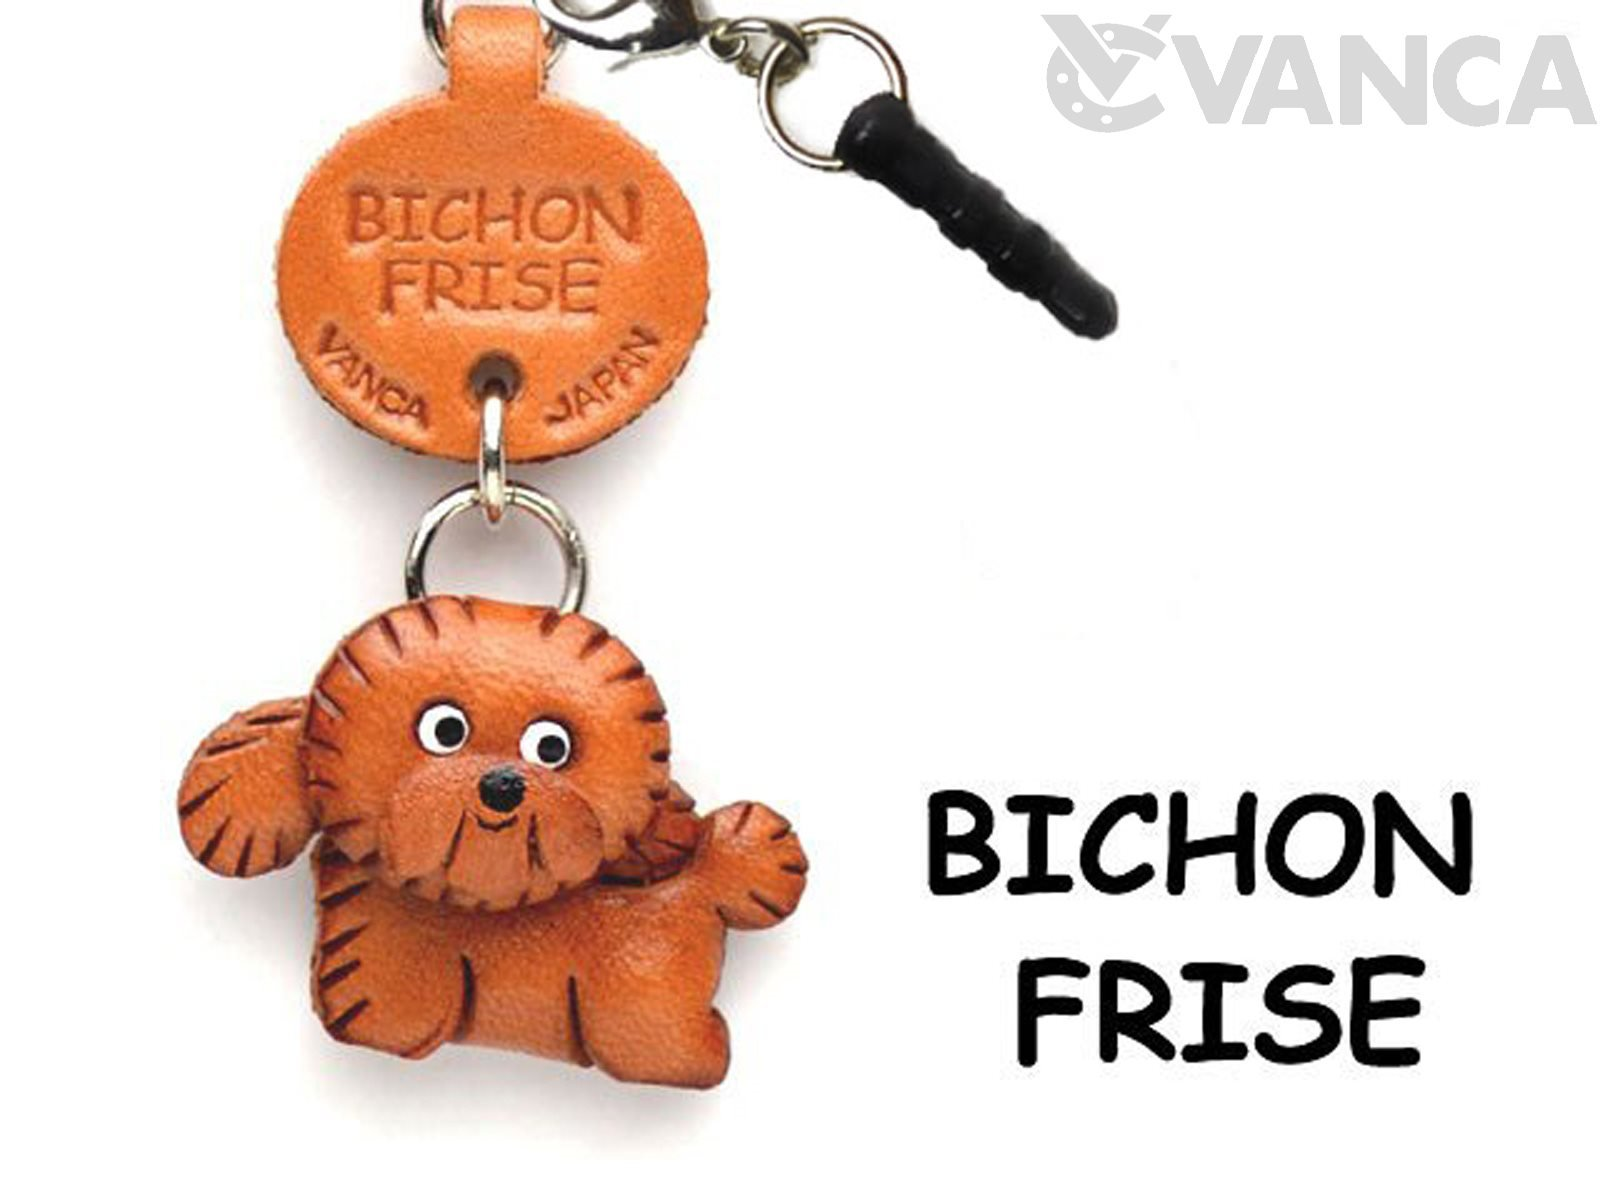 Bichon Frise Leather Dog Earphone Jack Accessory / Dust Plug / Ear Cap / Ear Jack *VANCA* Made in Japan #47707